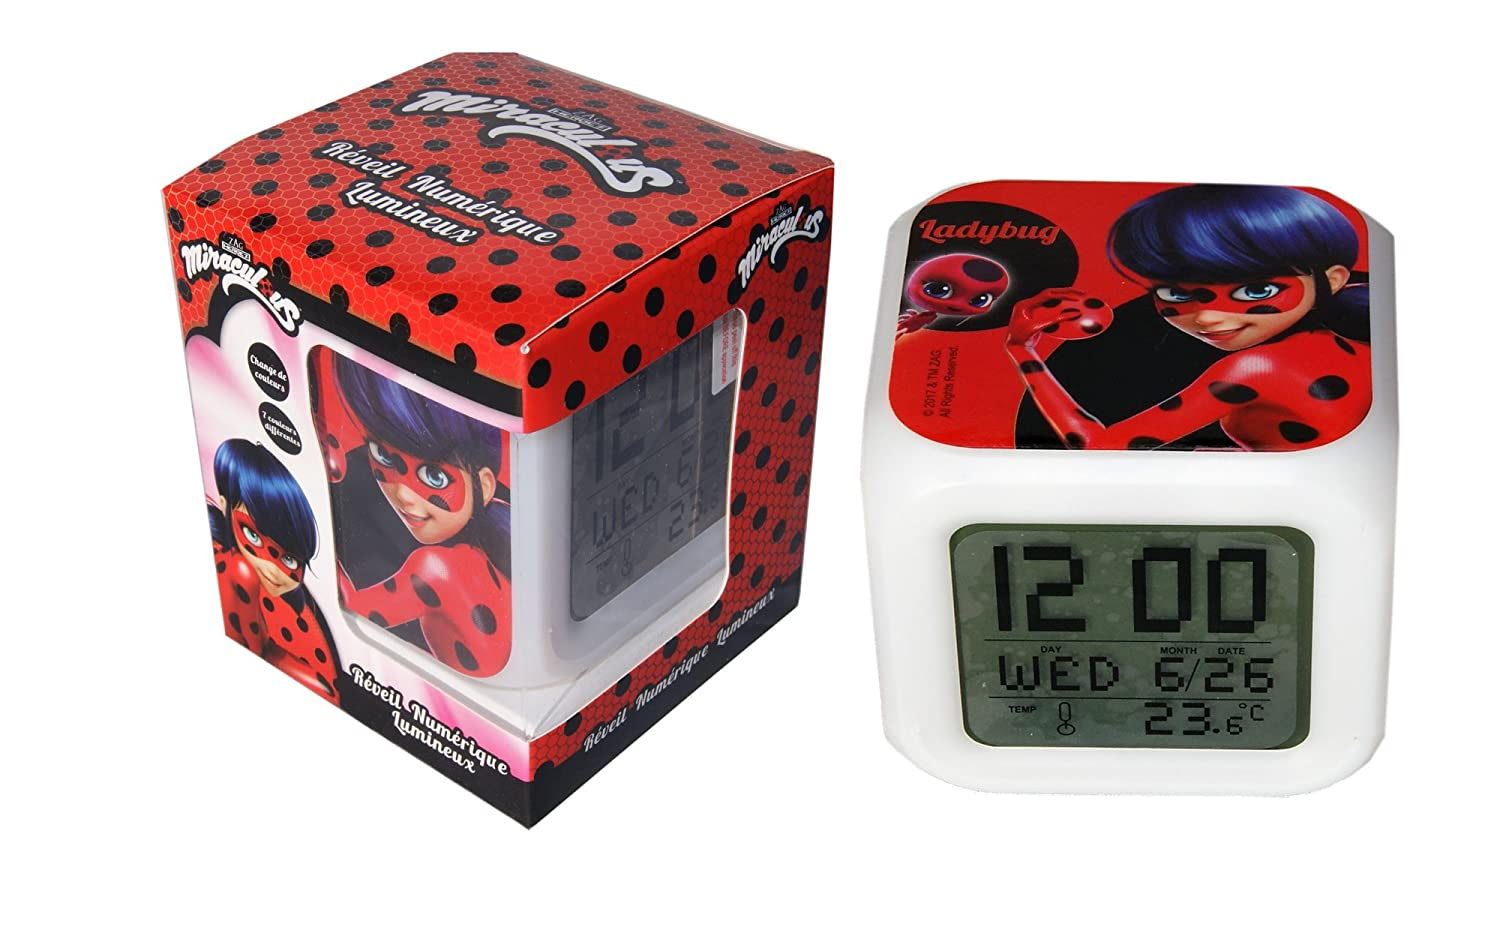 Miraculous Ladybug LED Digital Alarm Clock Night Colorful Glowing,Thermometer